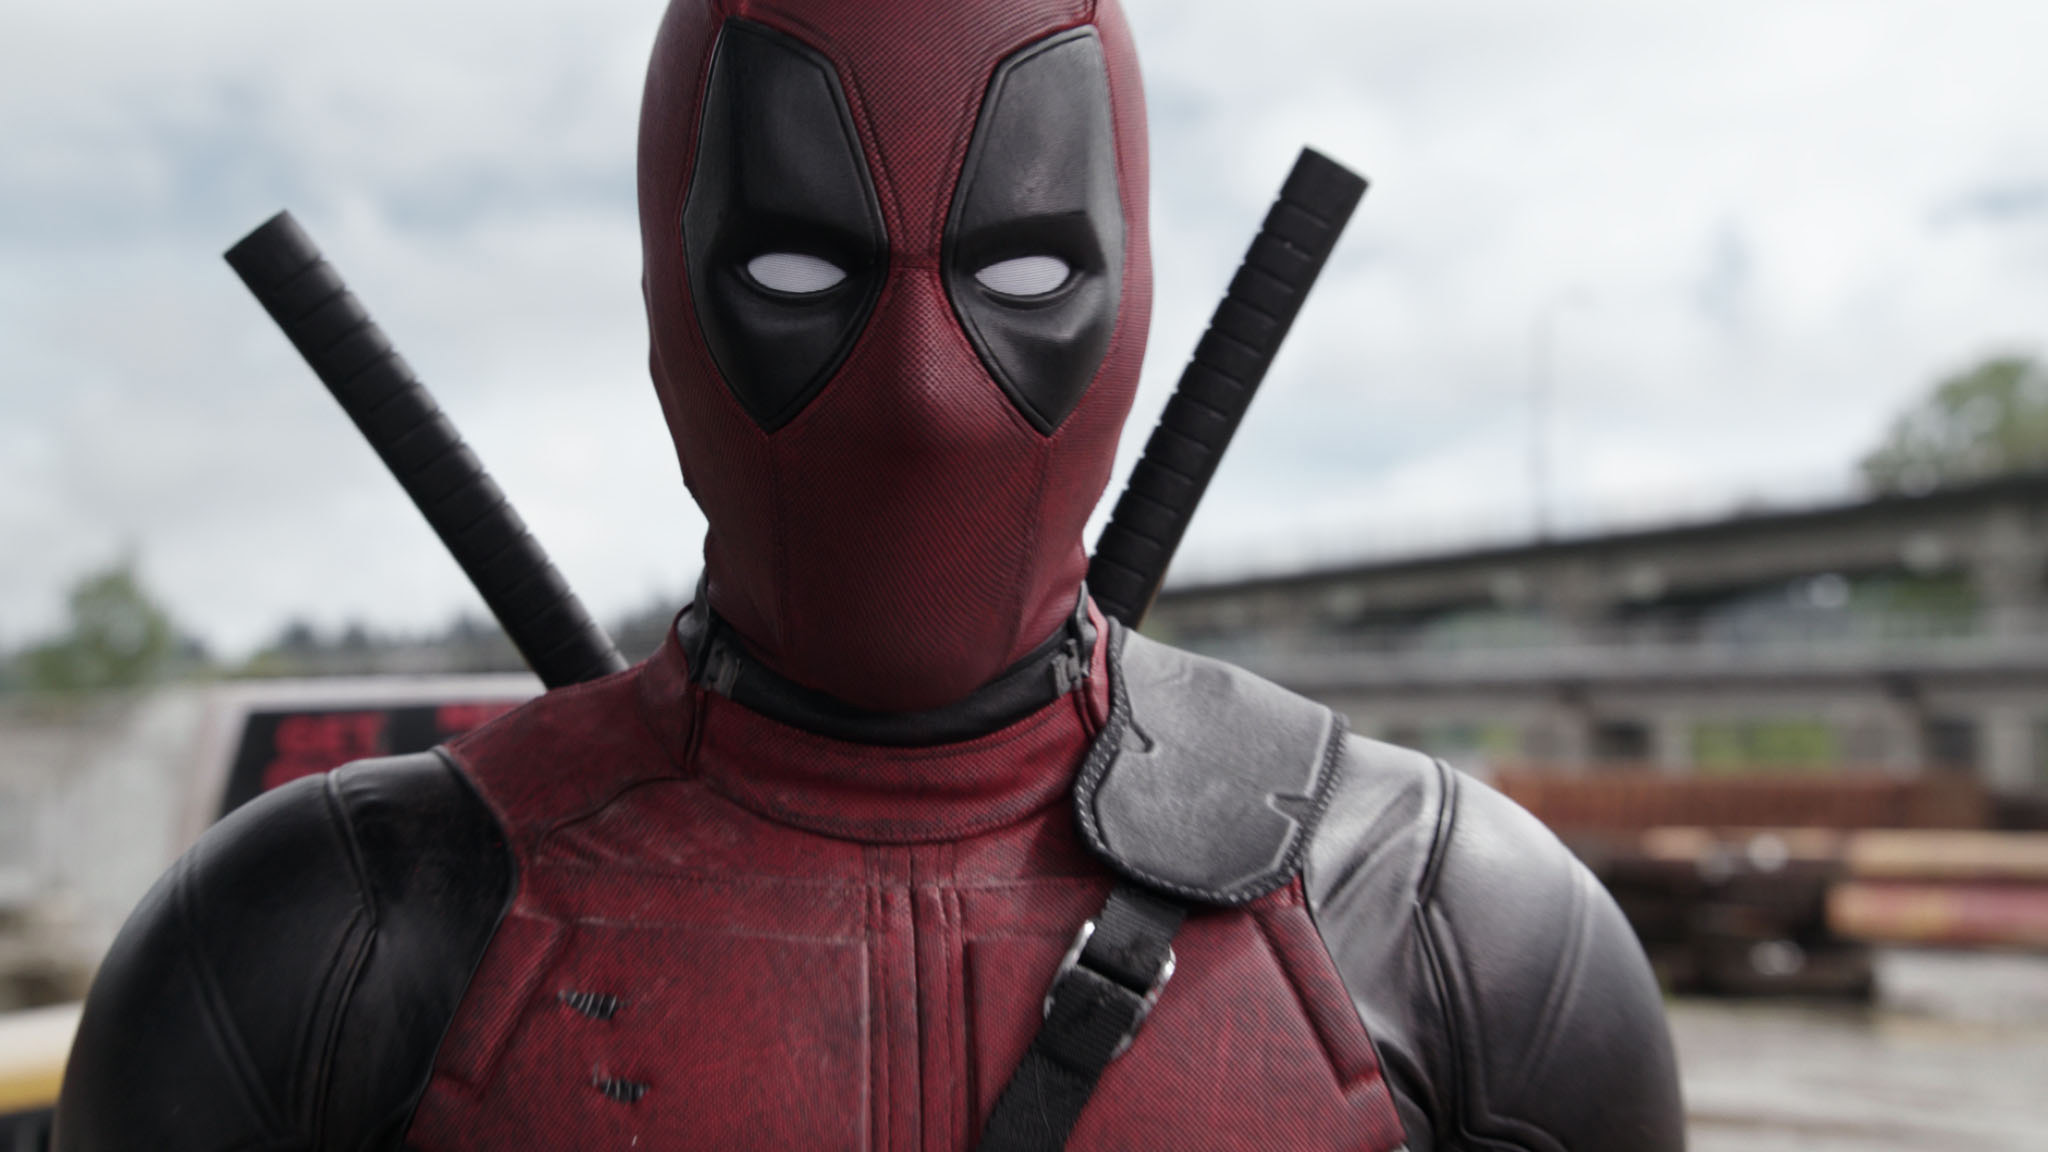 Donald glover is working on a deadpool animated tv series for Dead pool show in jaipur